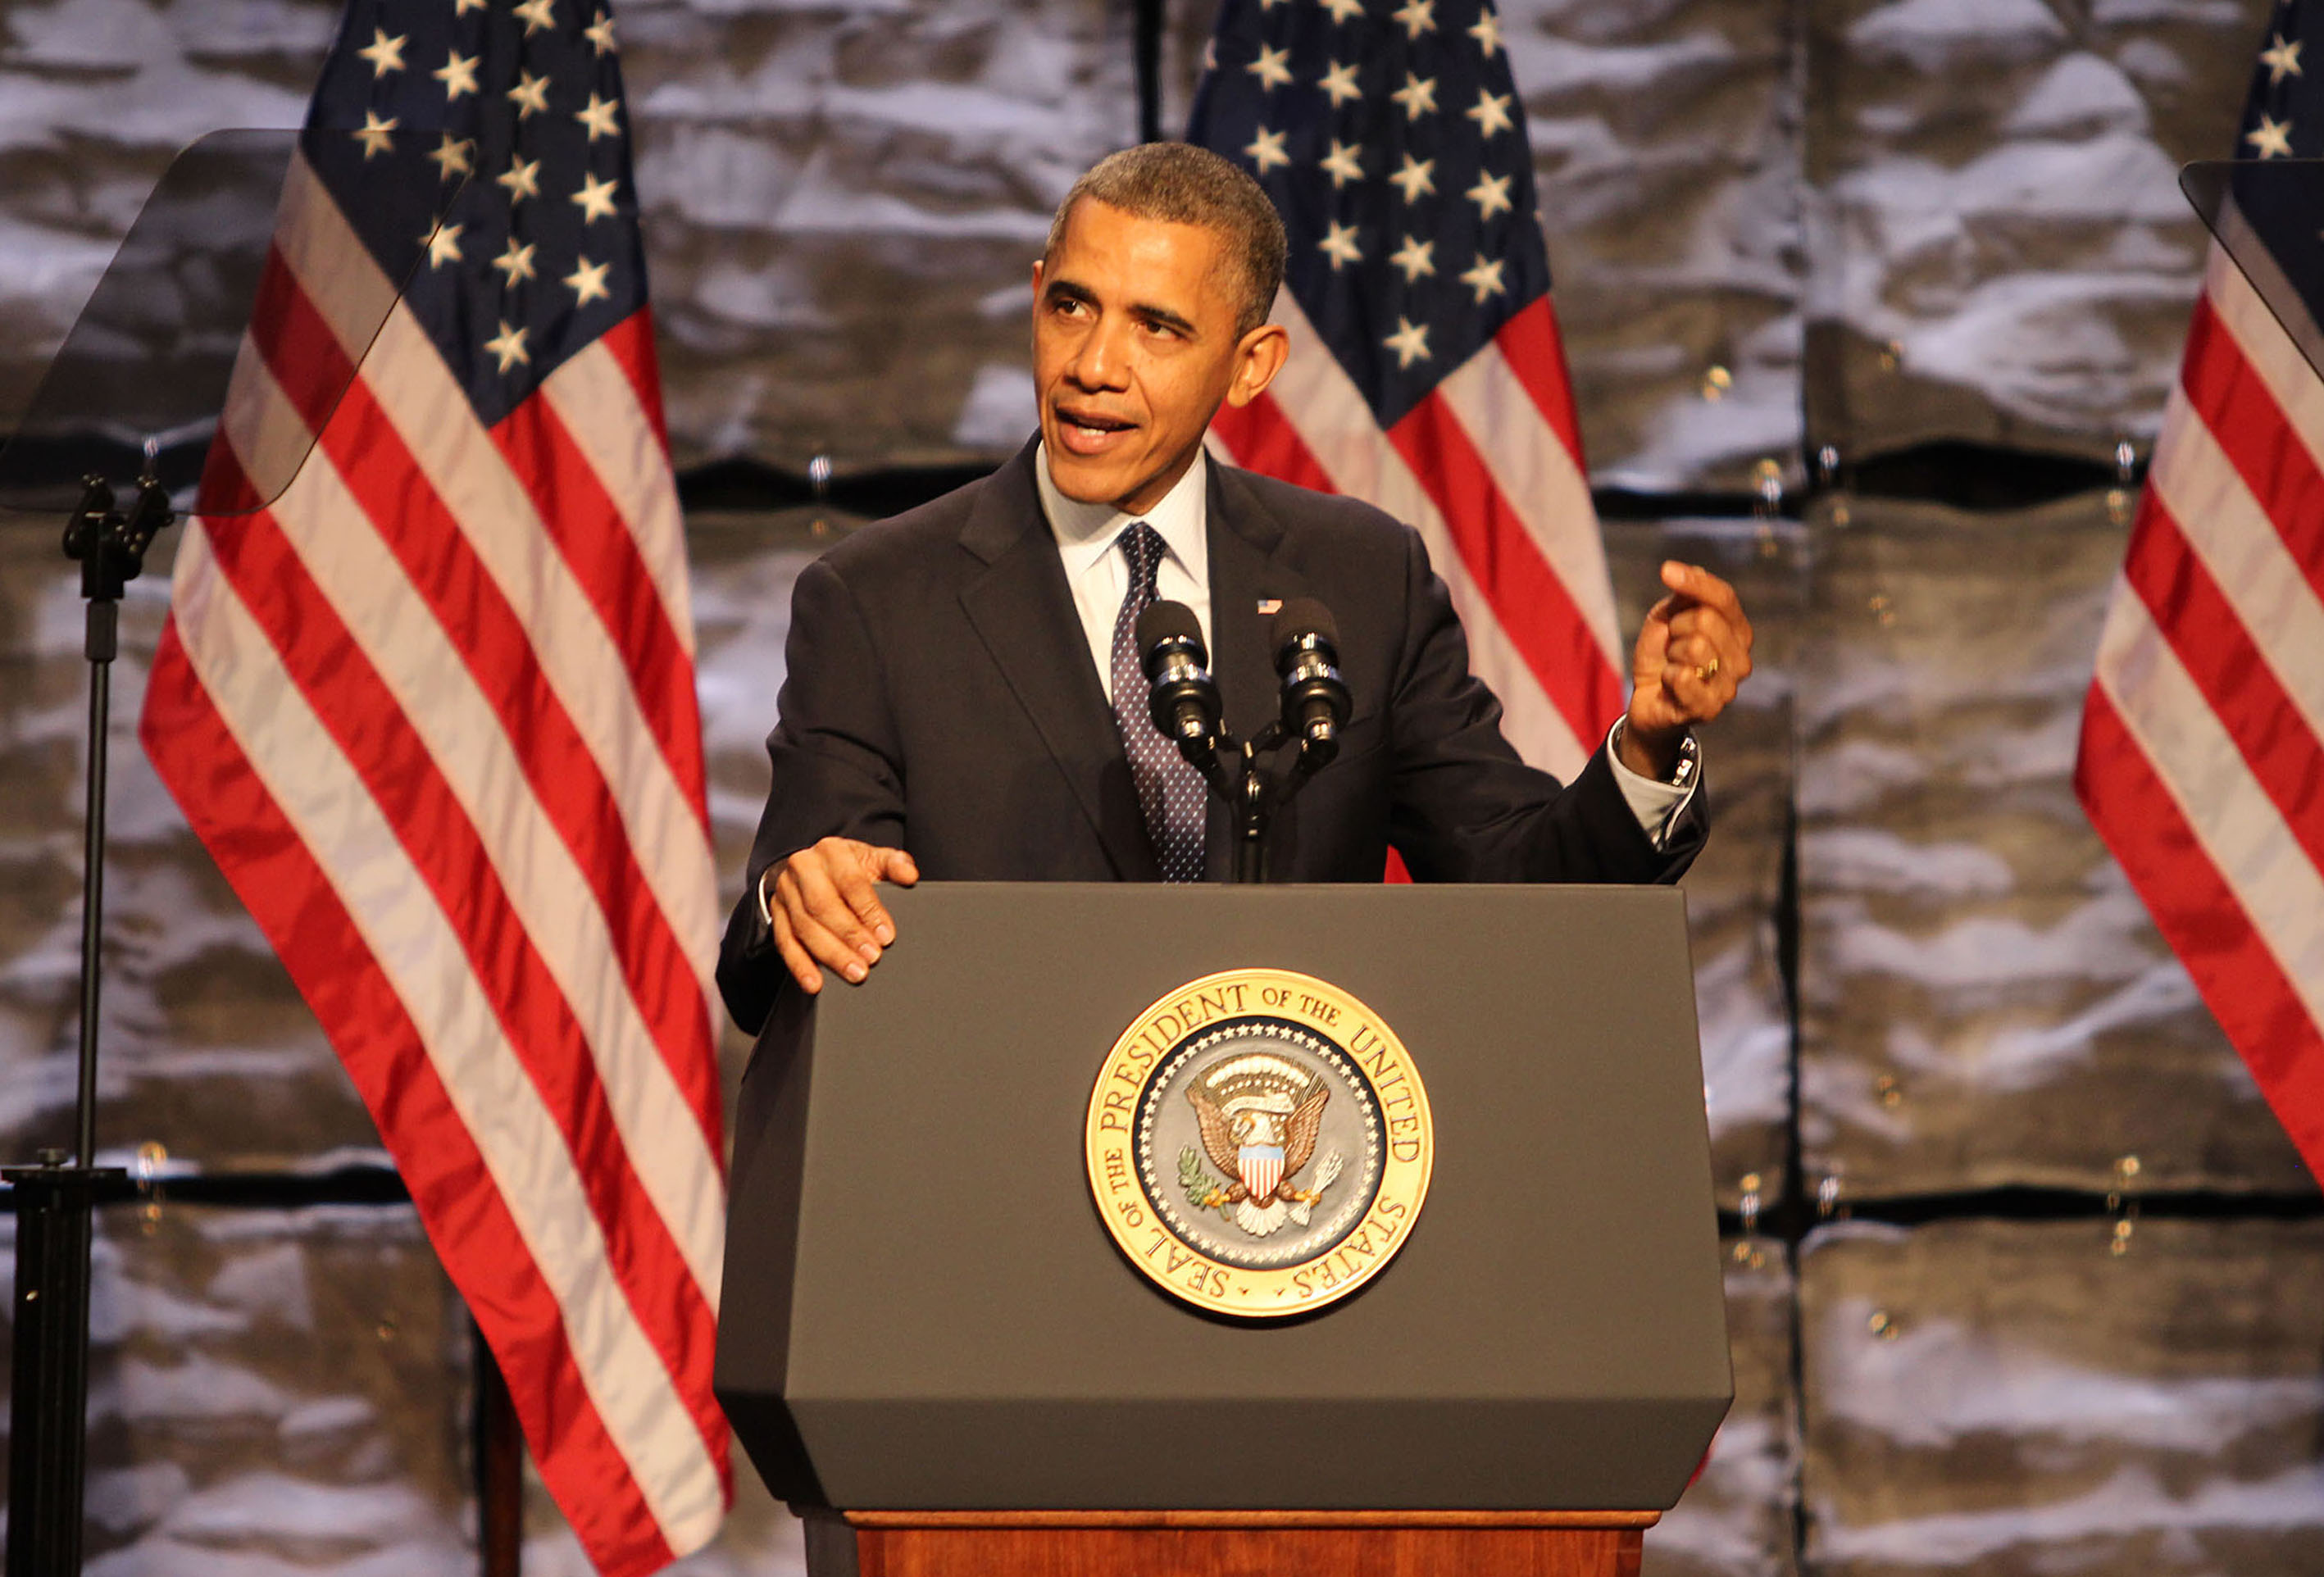 U.S. President Barack Obama speaks at the SelectUSA Investment Summit on Oct. 31, 2013, in Washington, D.C.